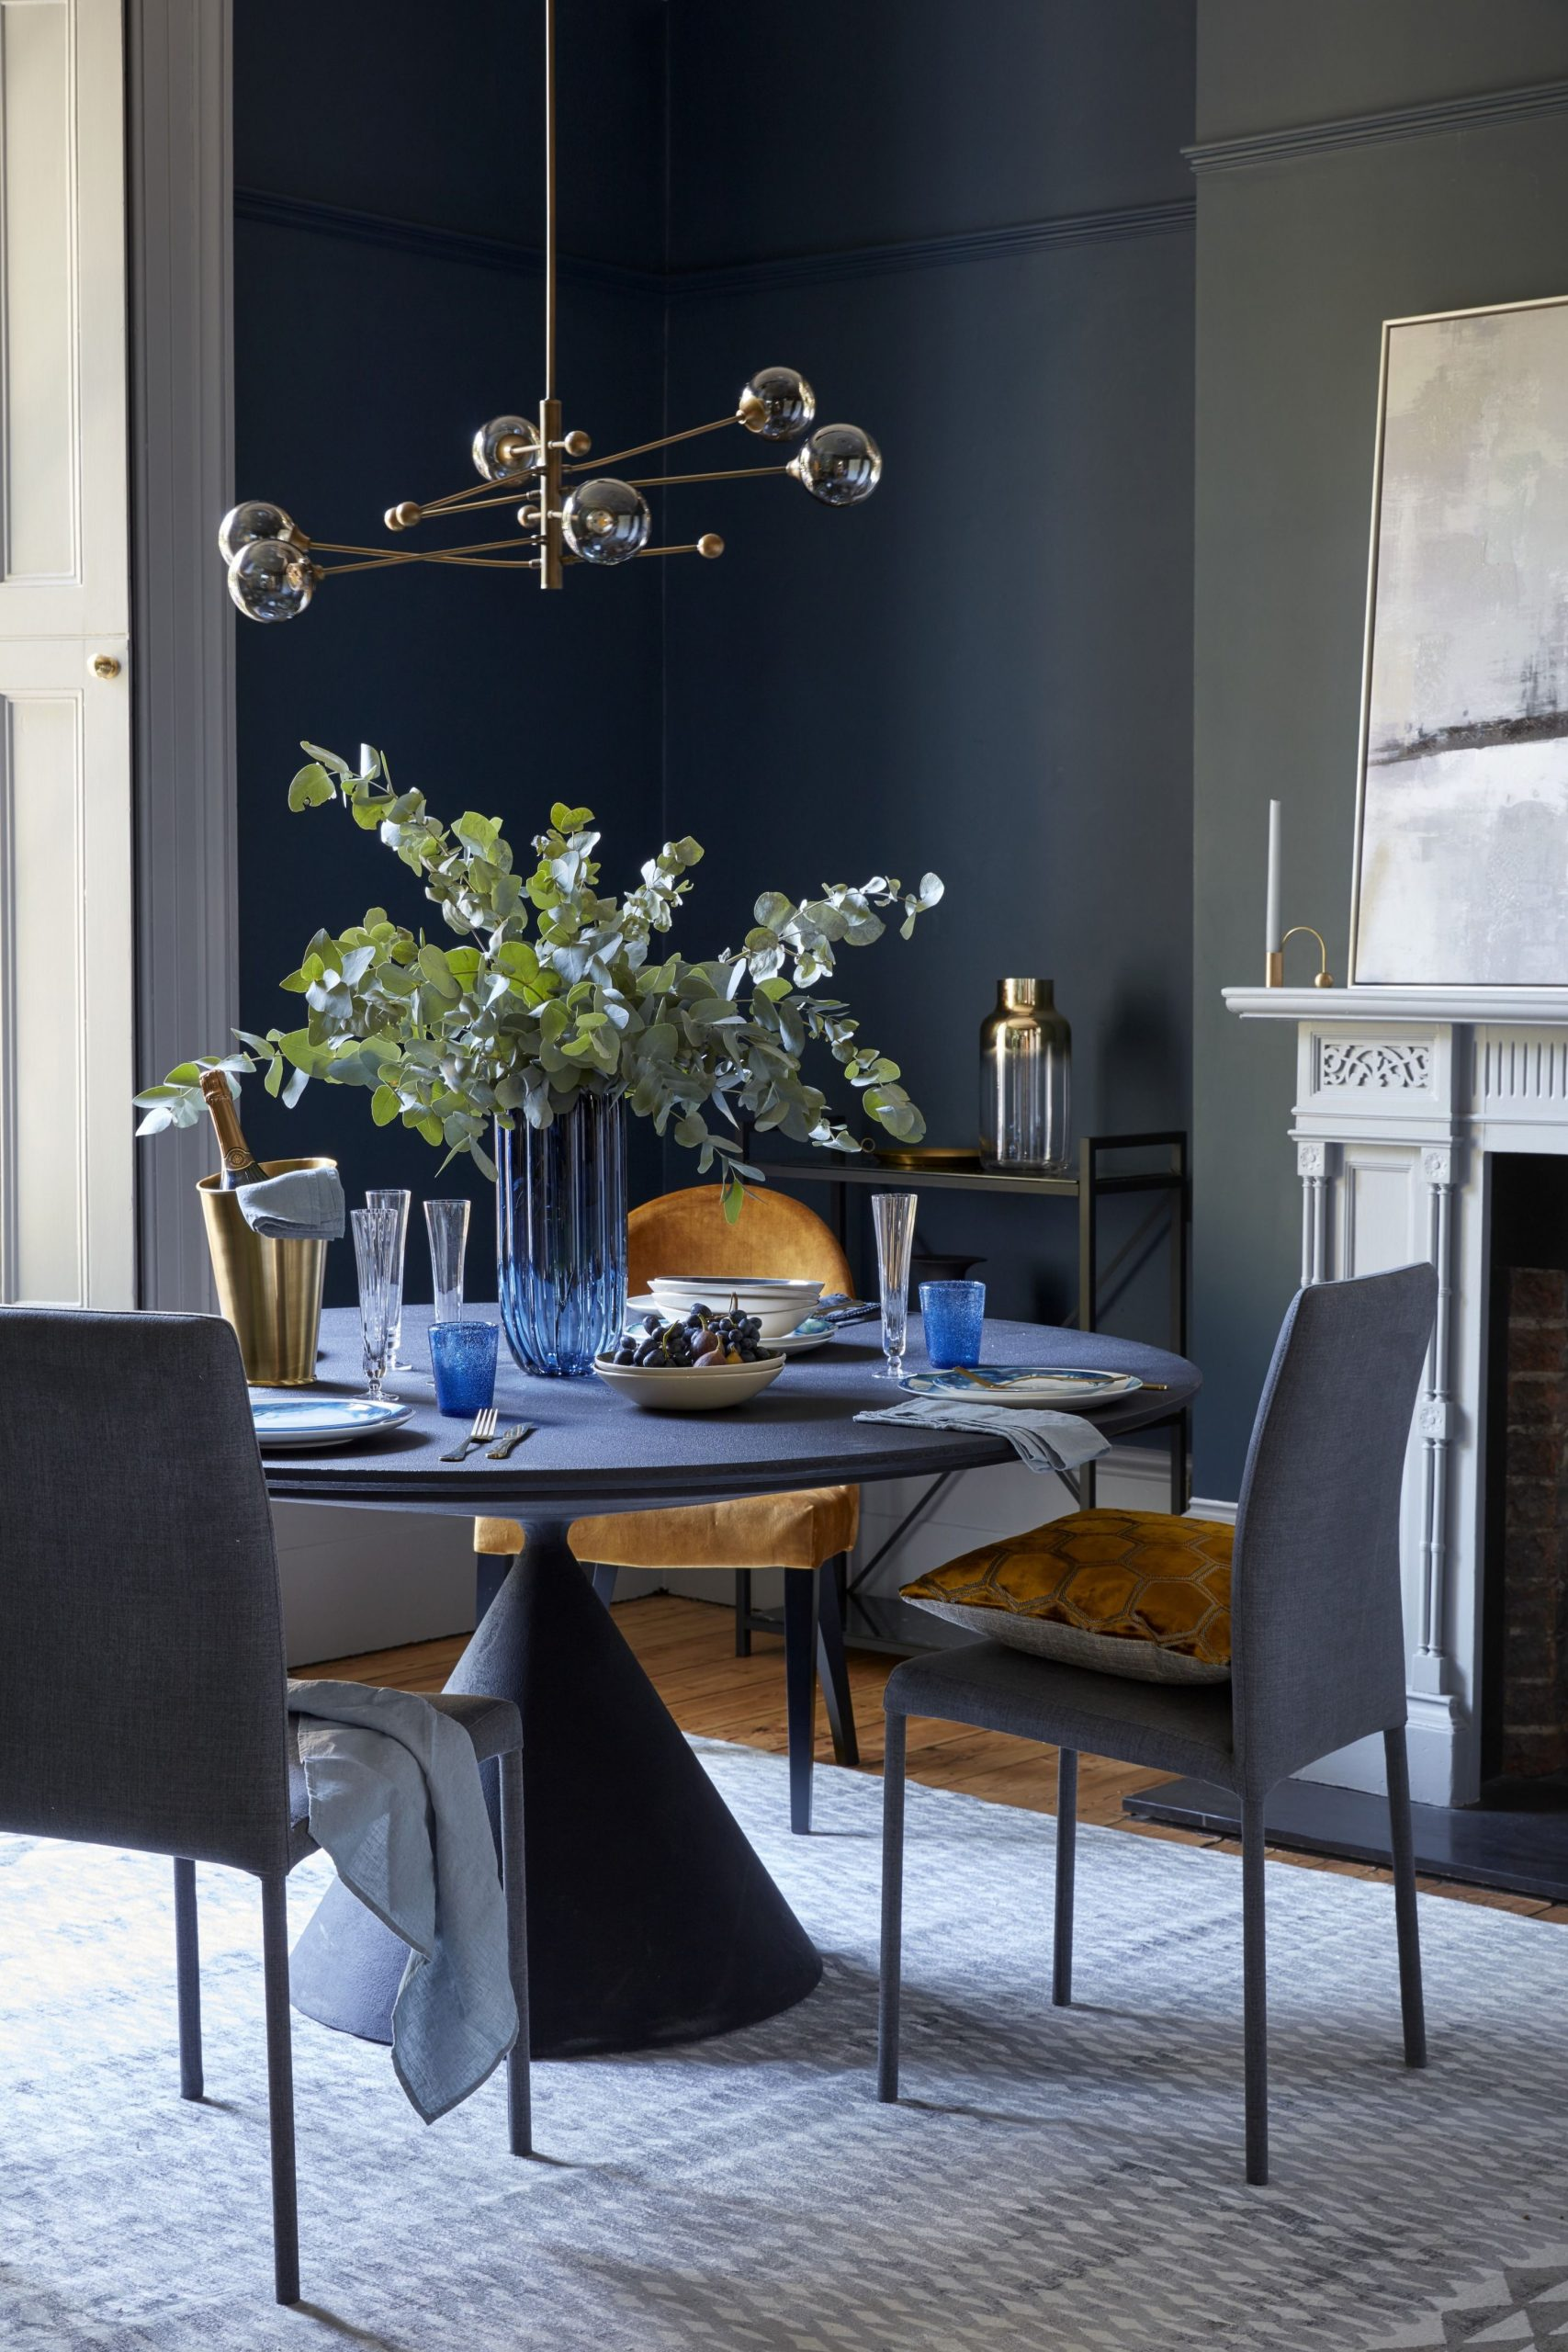 11 Best Dining Room Decorating Ideas - Pictures of Dining Room Decor - Dining Table Ideas Uk